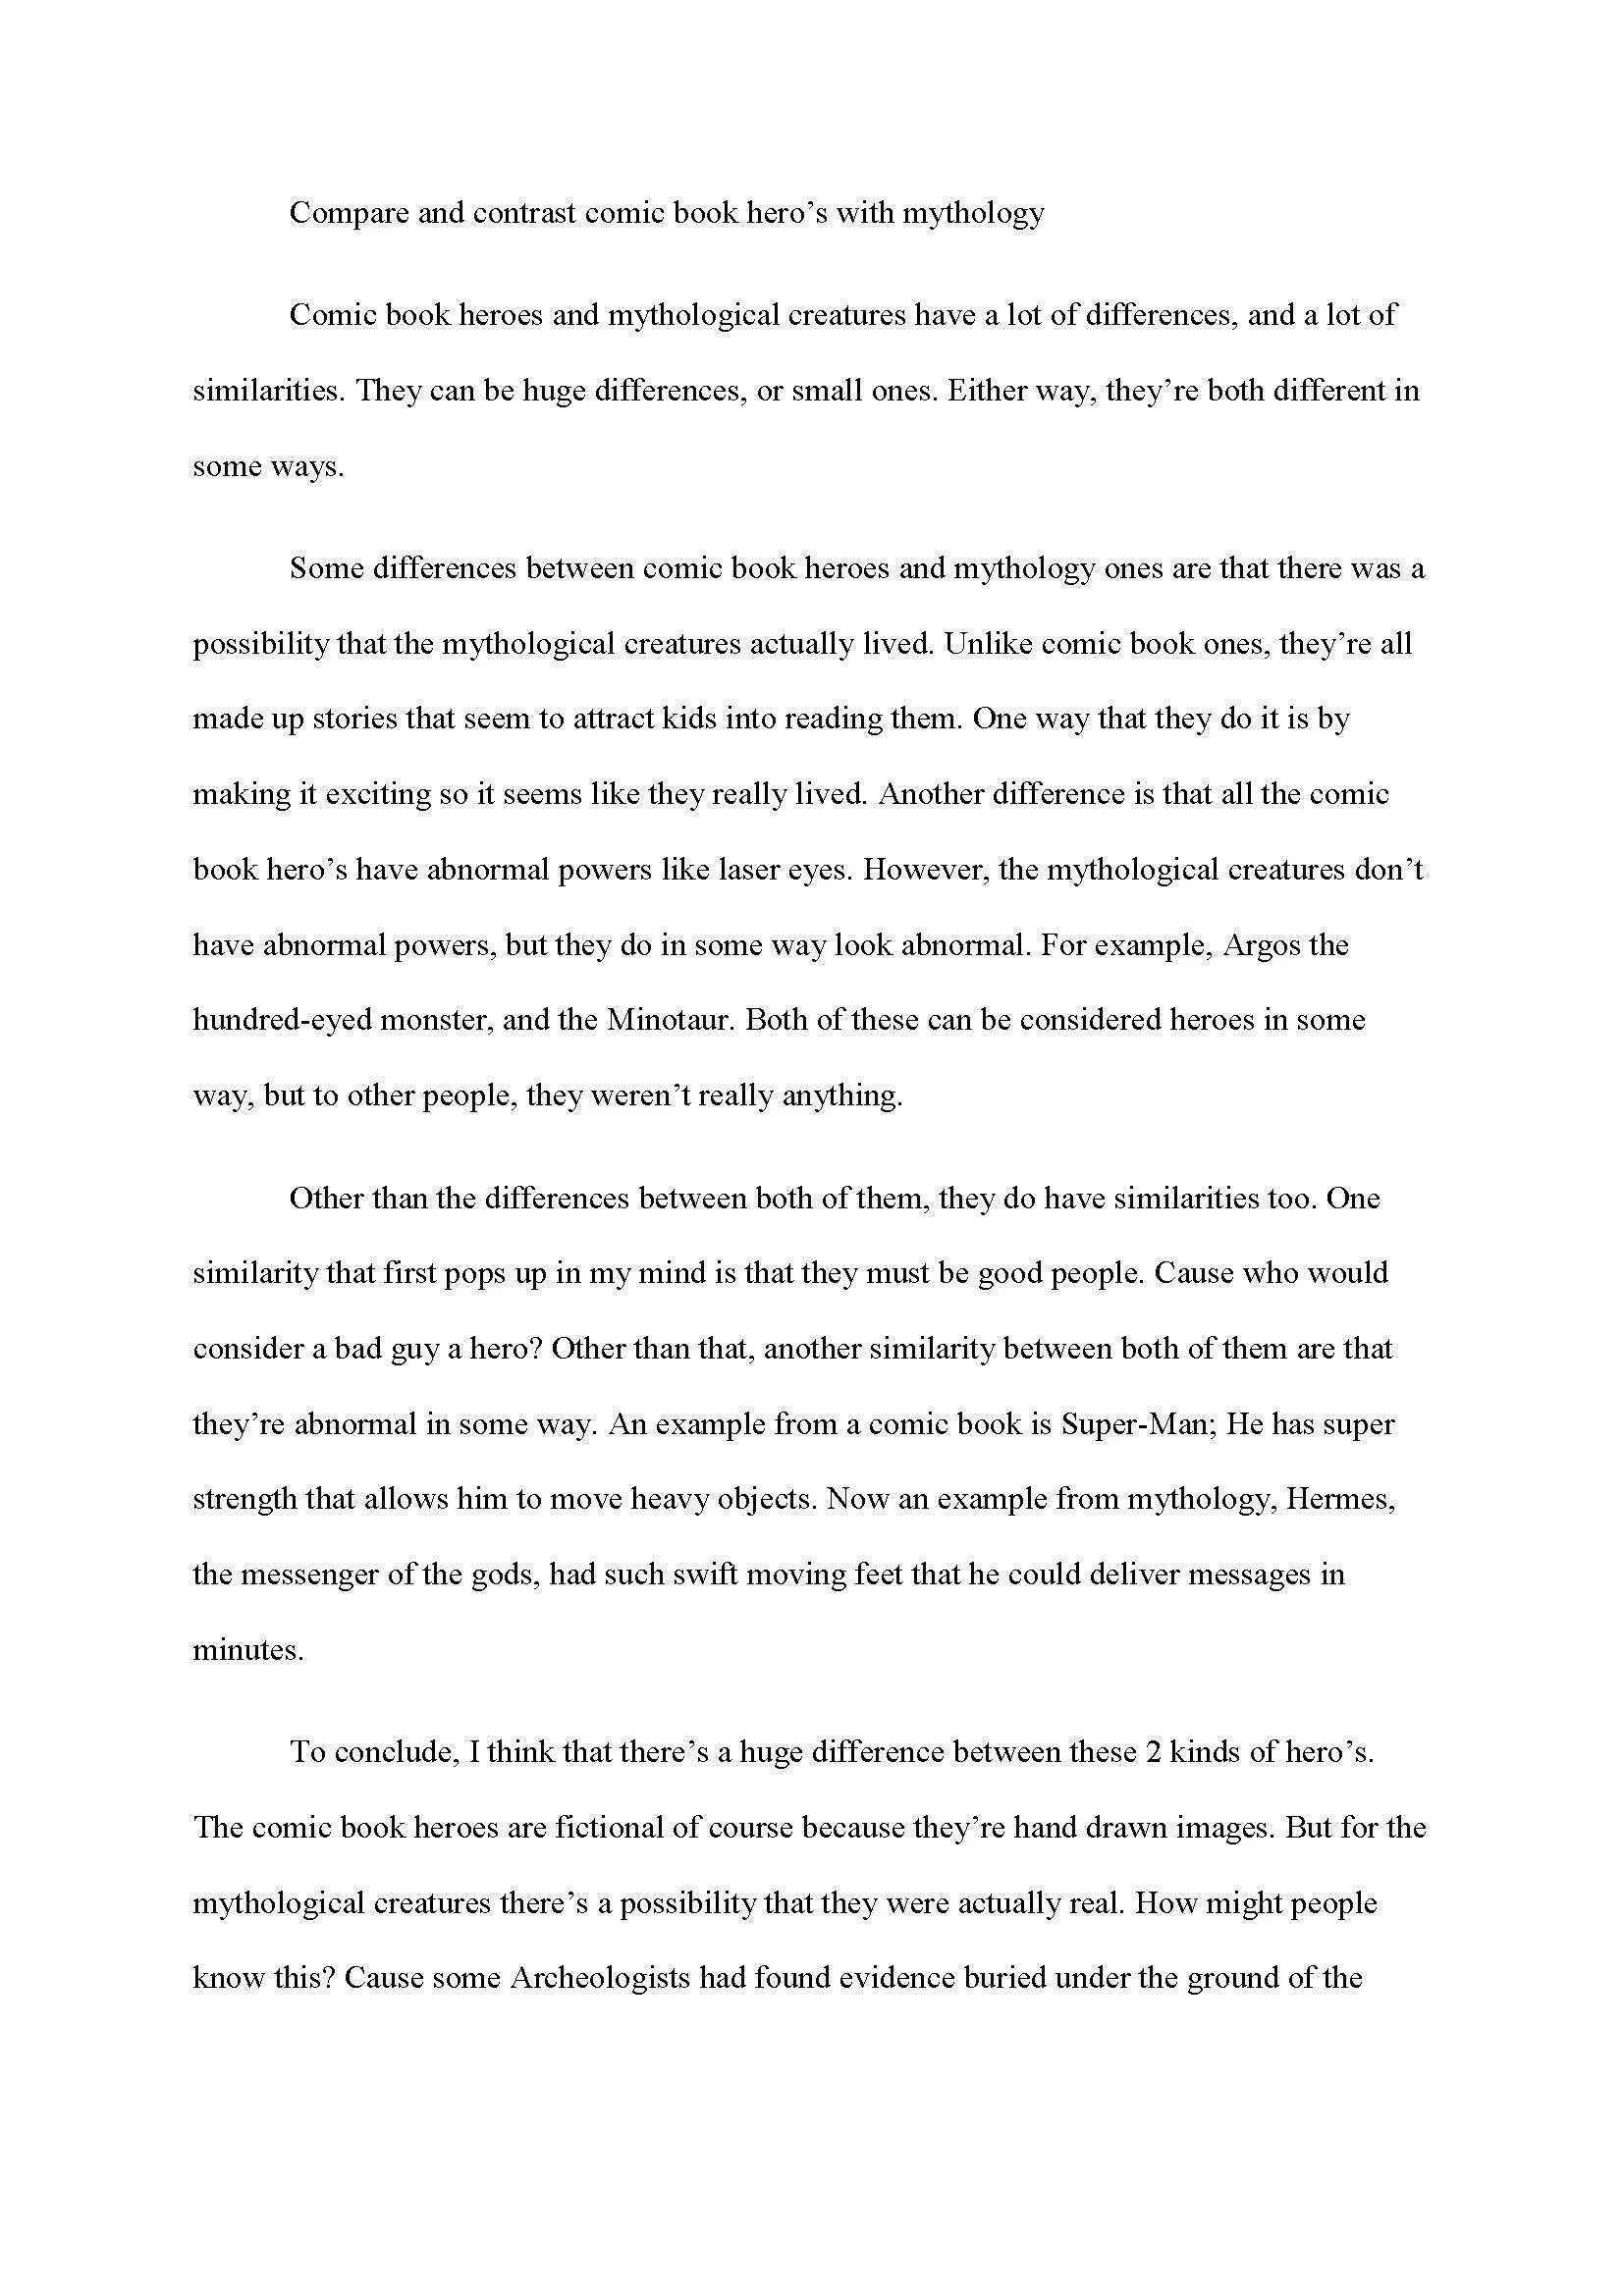 006 Excellent Compare And Contrast Essay Example College  For Topic Free ComparisonFull